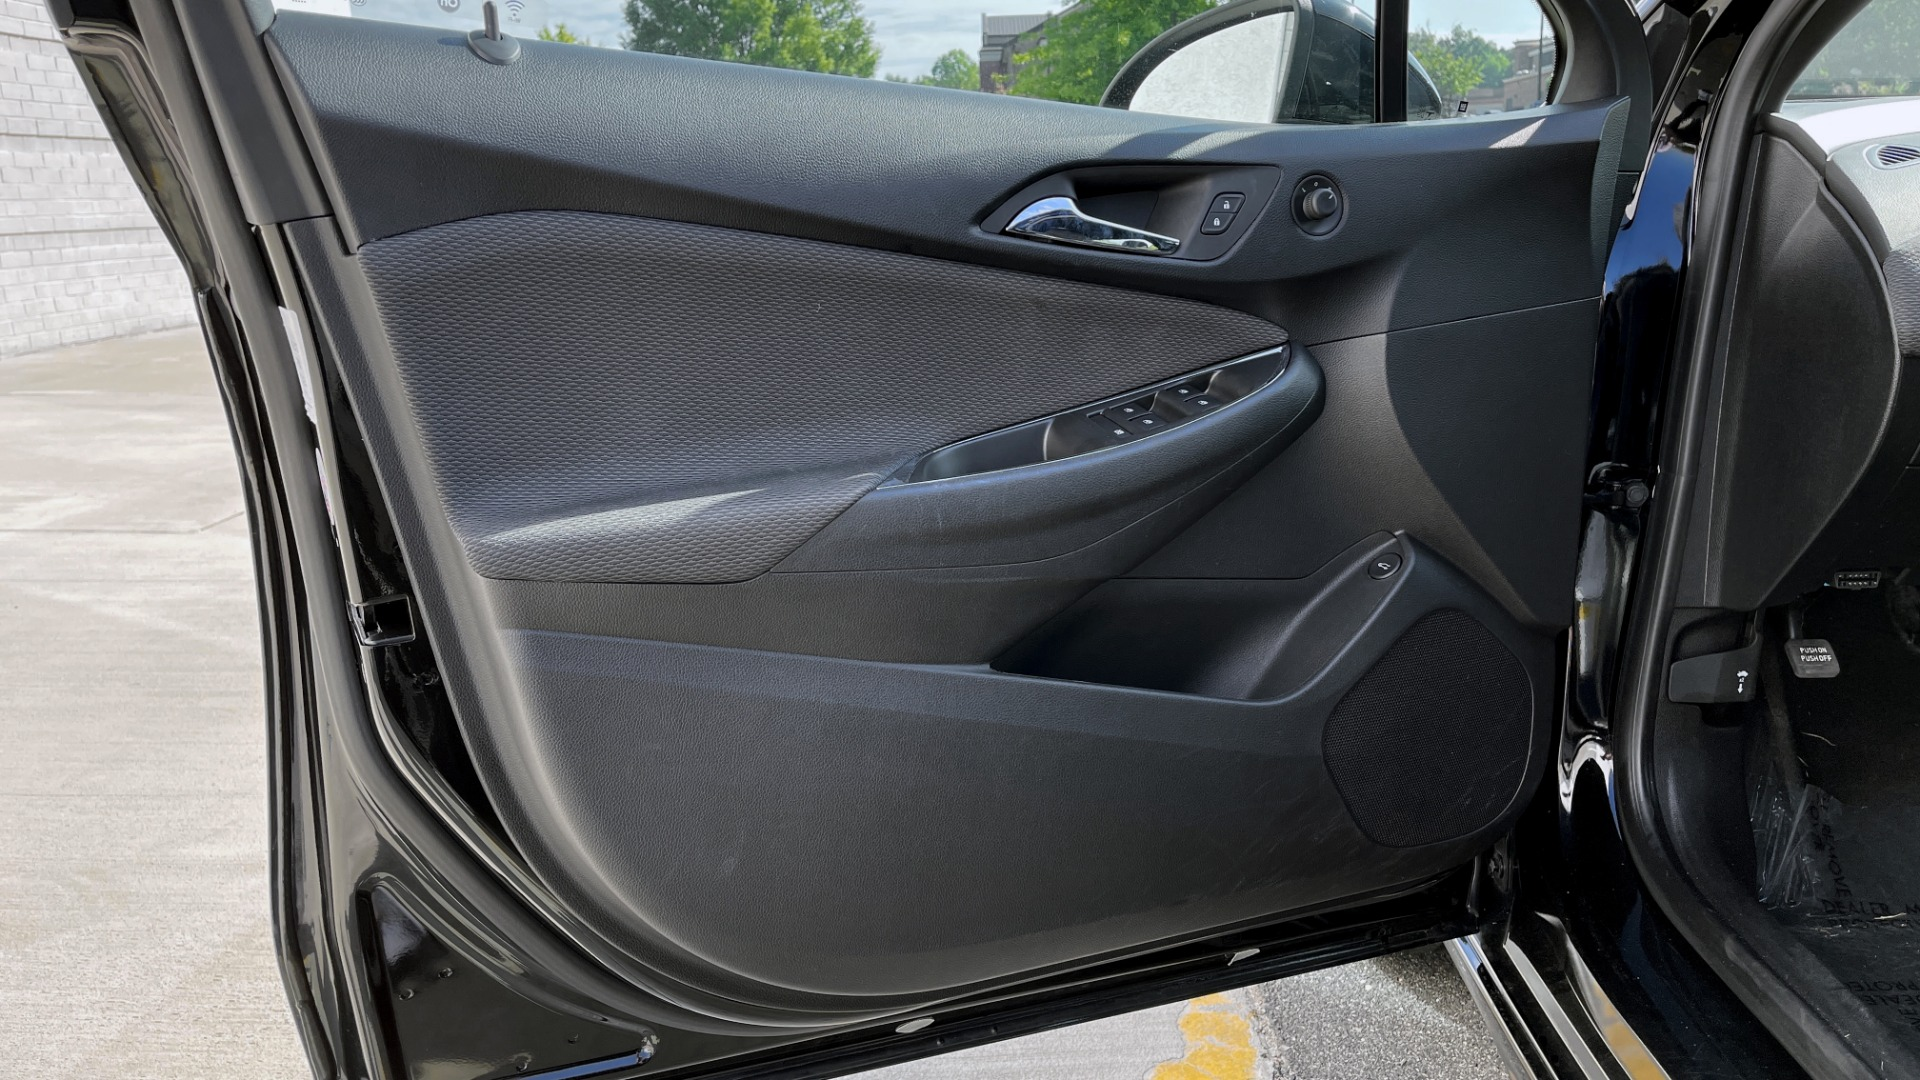 Used 2019 Chevrolet CRUZE LT / 1.4L TURBO / 6-SPD AUTO / AIR CONDITIONING / REARVIEW for sale $18,495 at Formula Imports in Charlotte NC 28227 19